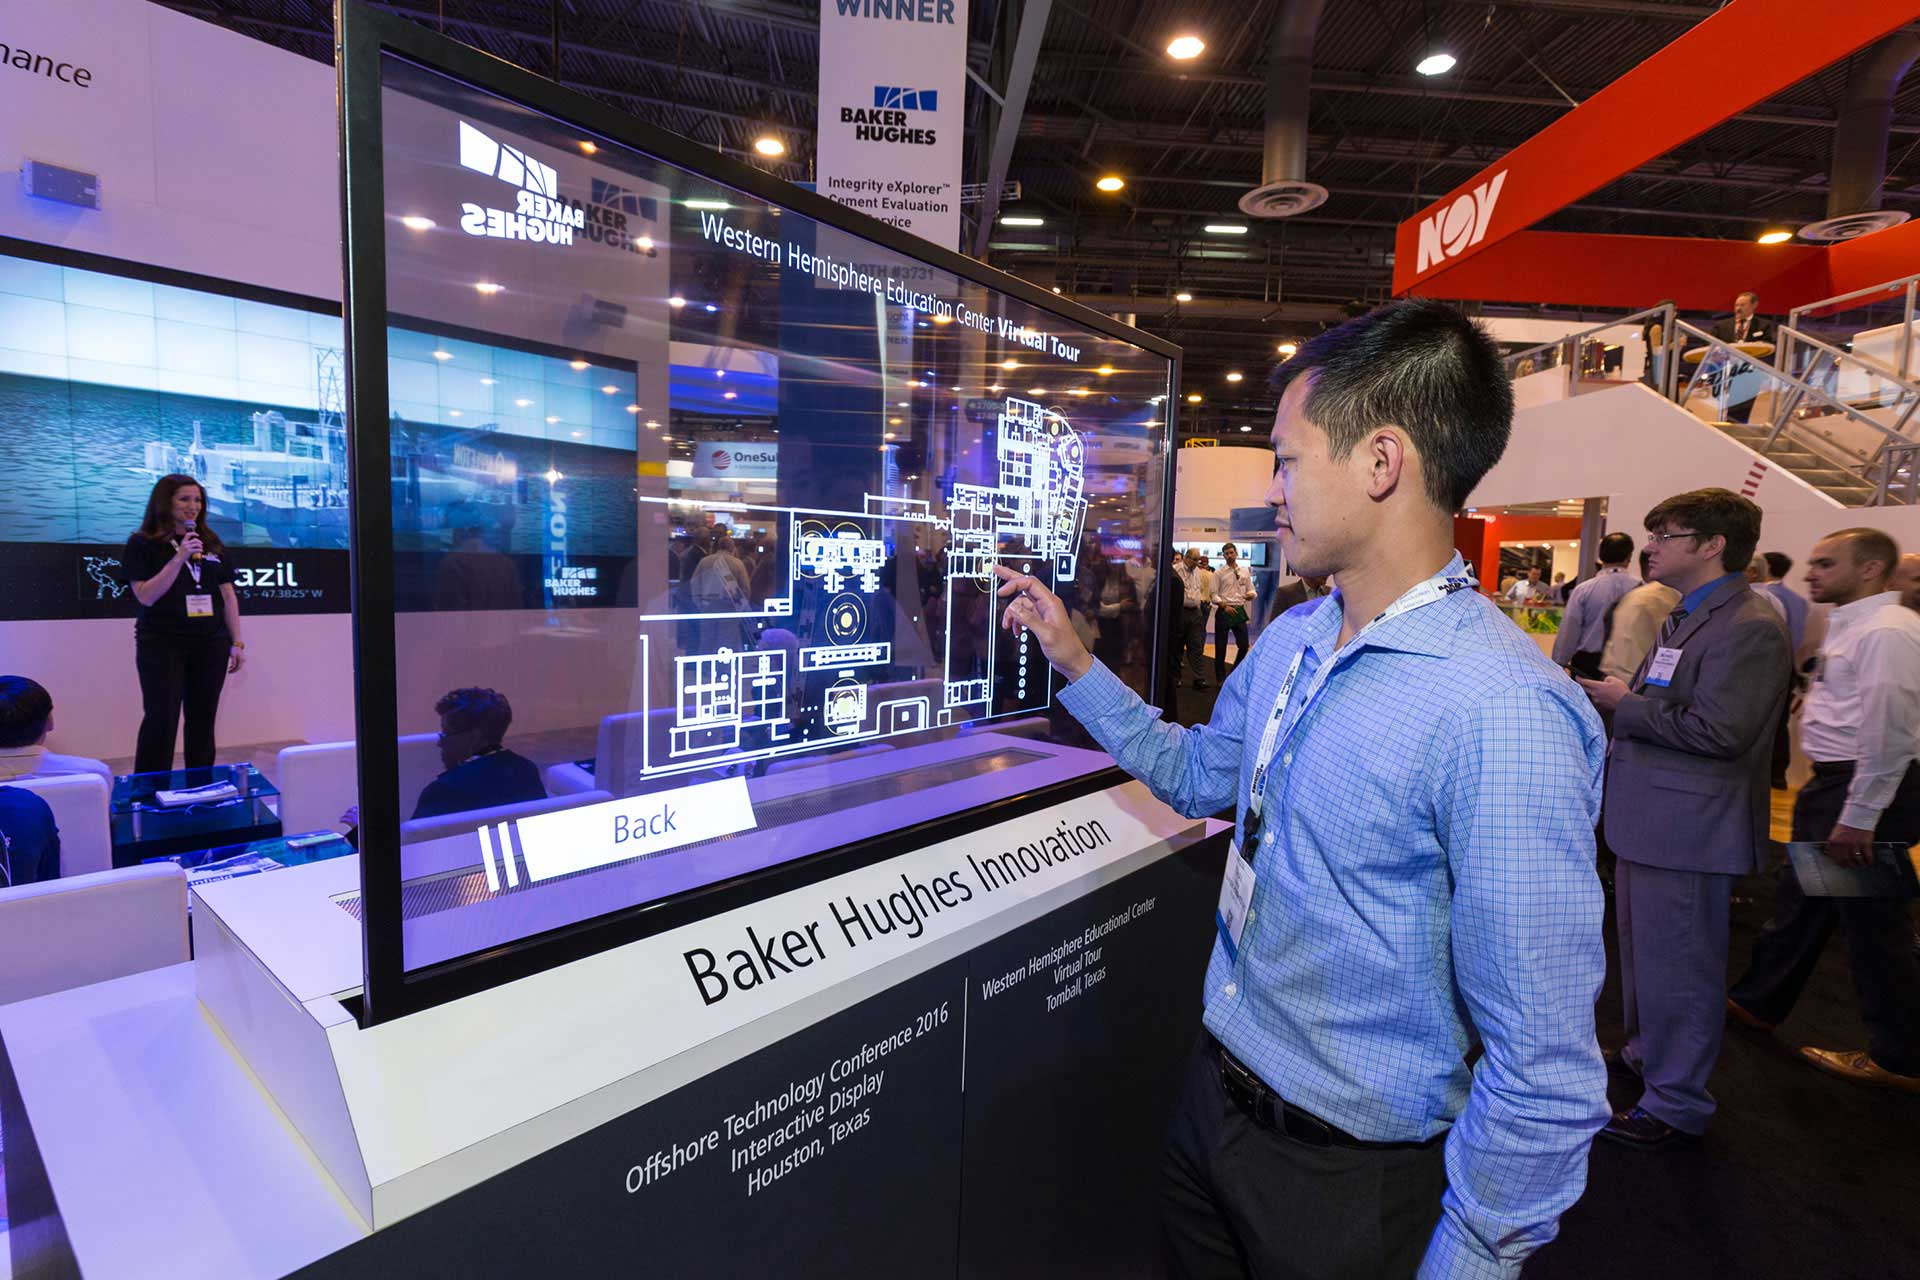 Baker hughes transparent oled screen